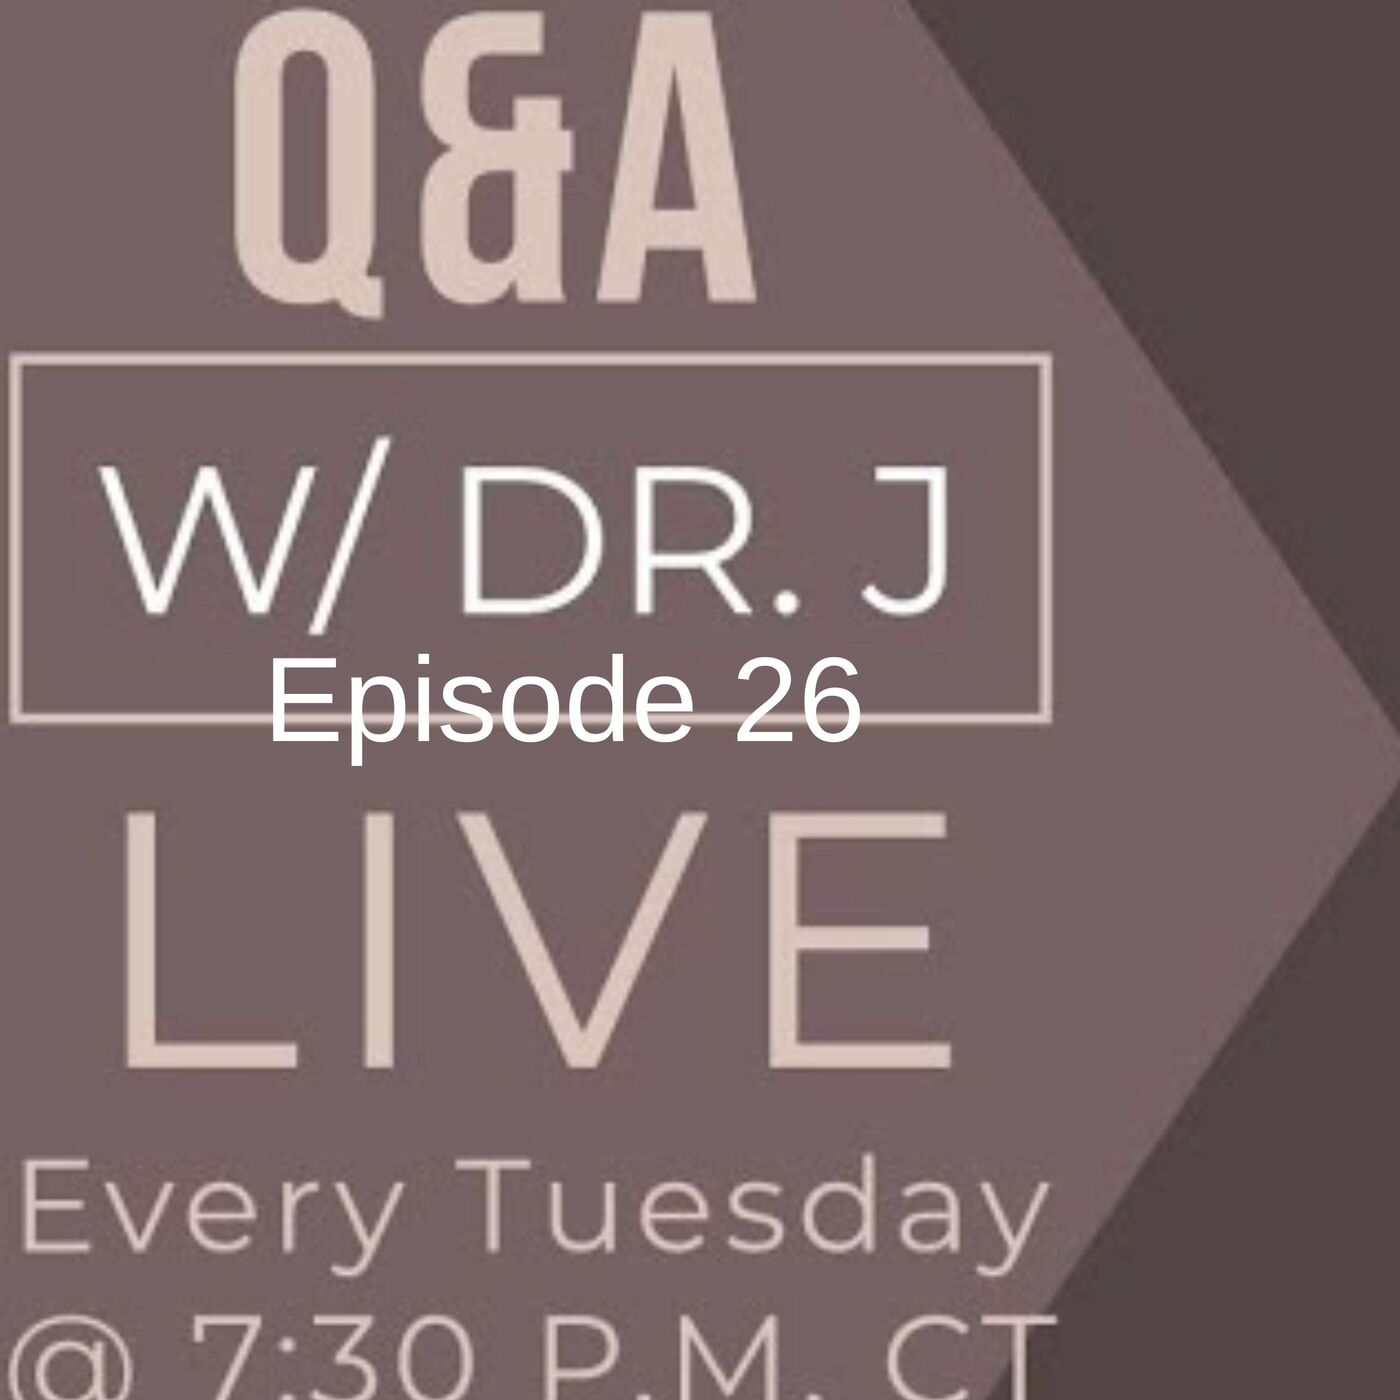 EP 26 Q&A w/ Dr J - Body lifts and Extreme Tummy tucks with Dr Jeneby